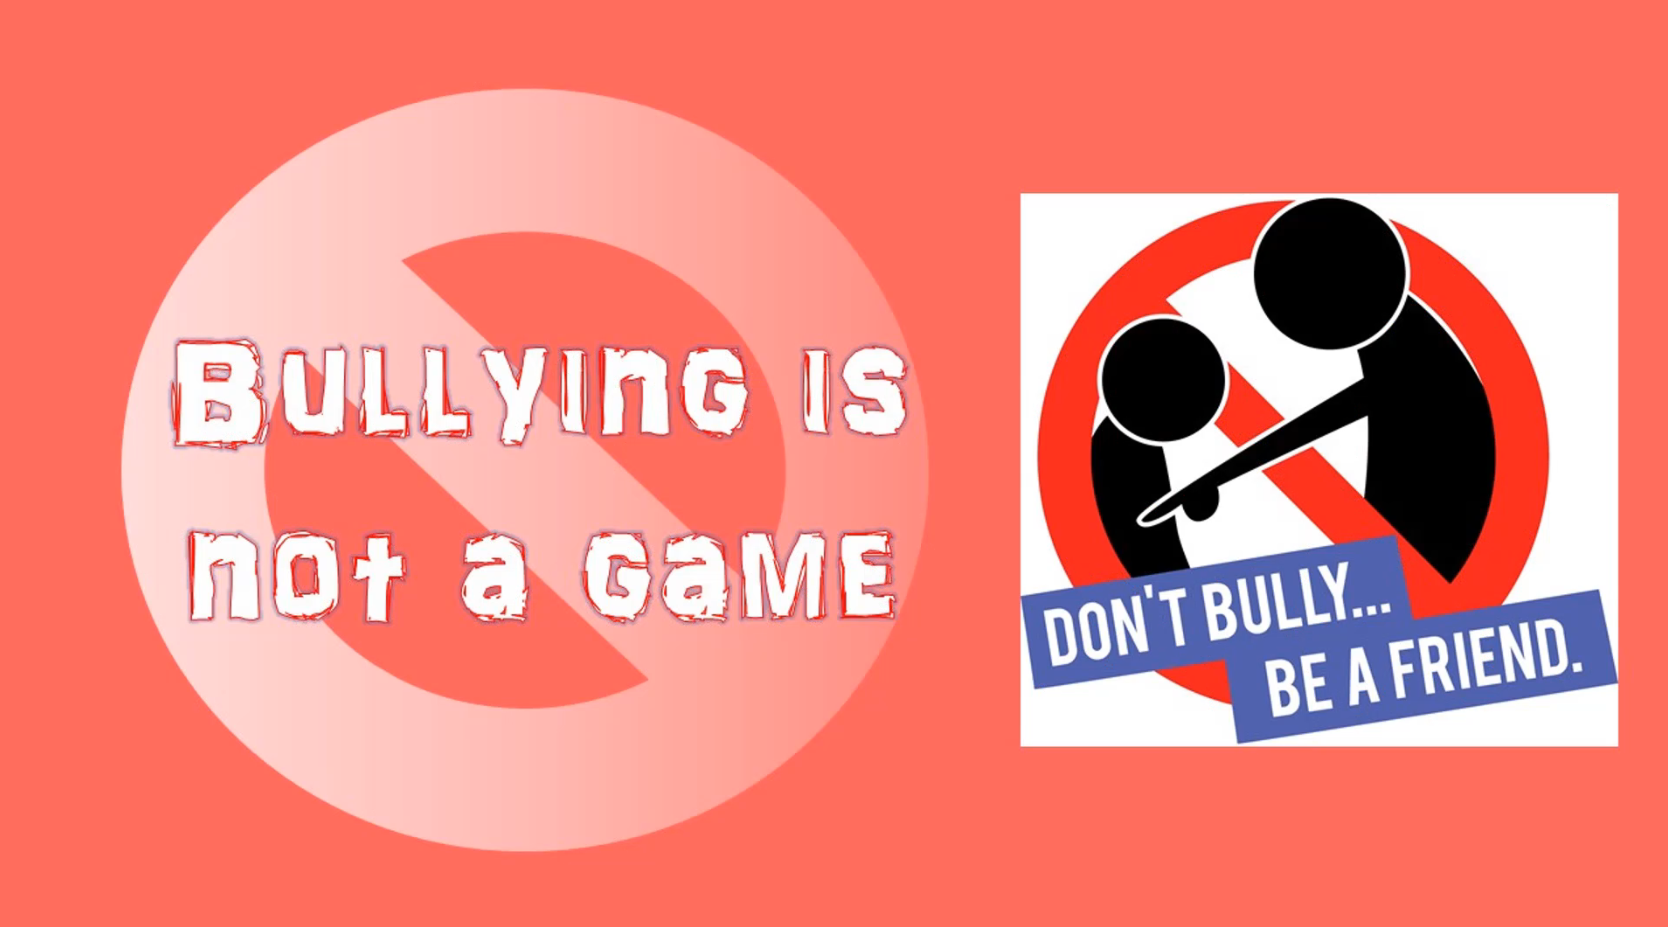 m Bullying is not a game